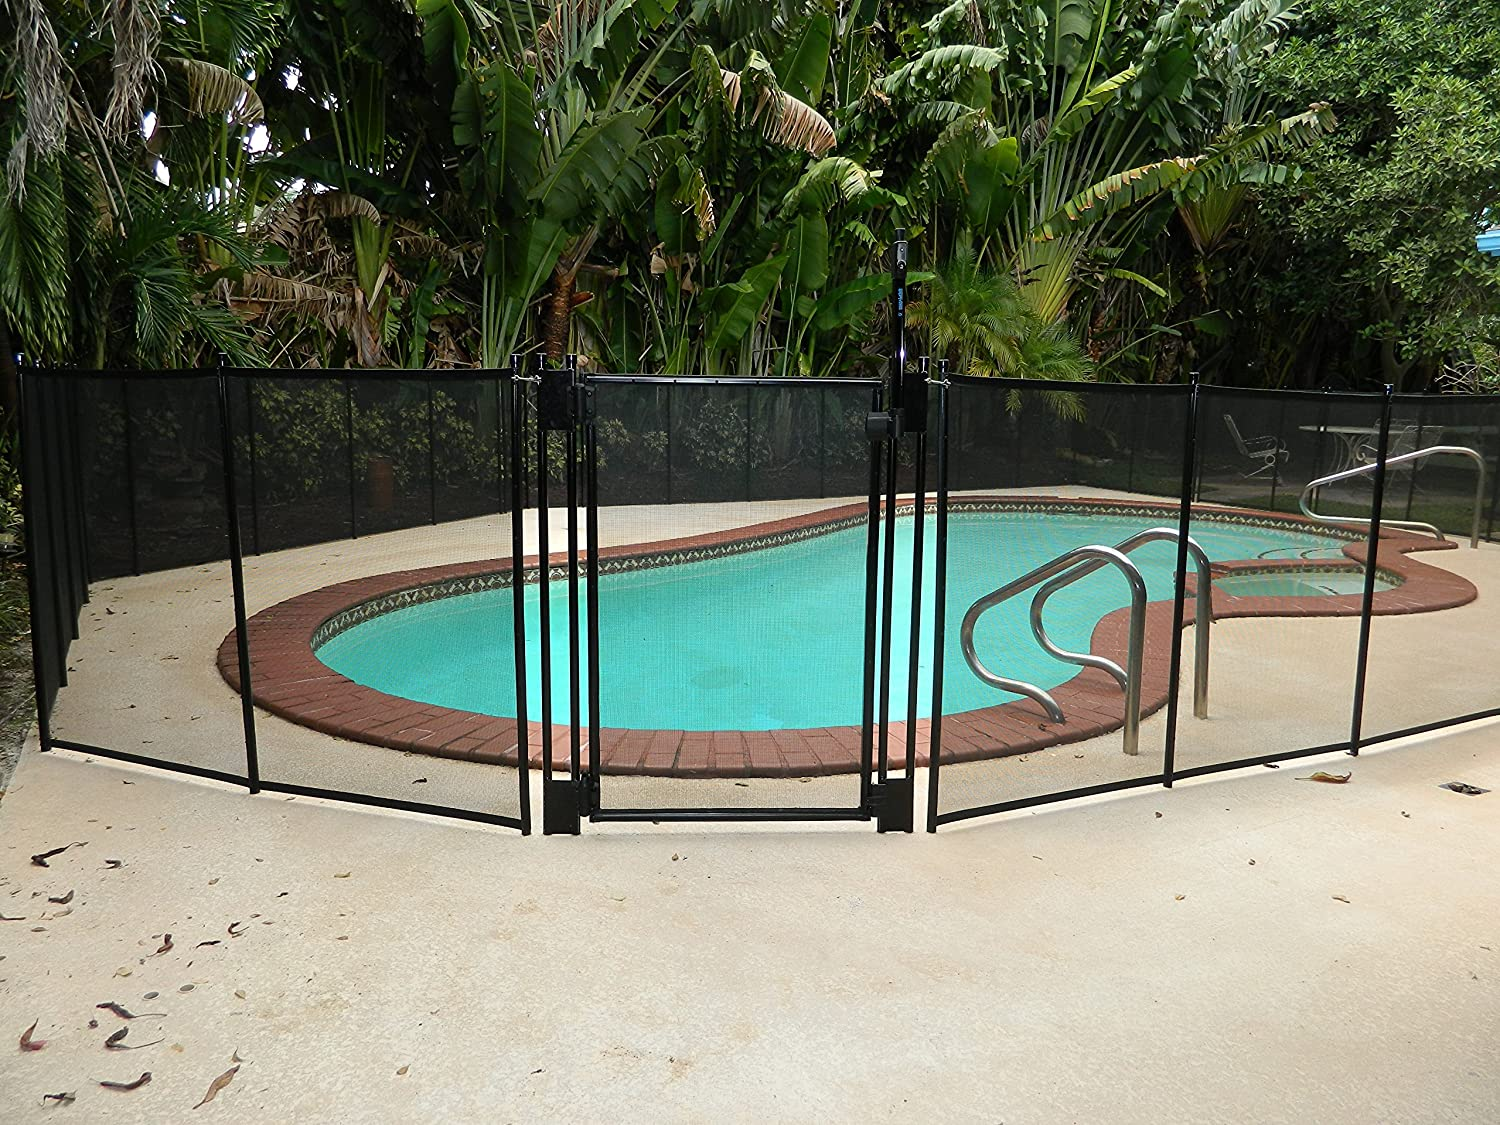 Amazon.com: Pool Fence DIY by Life Saver Self-Closing Gate Kit, Black:  Garden & Outdoor